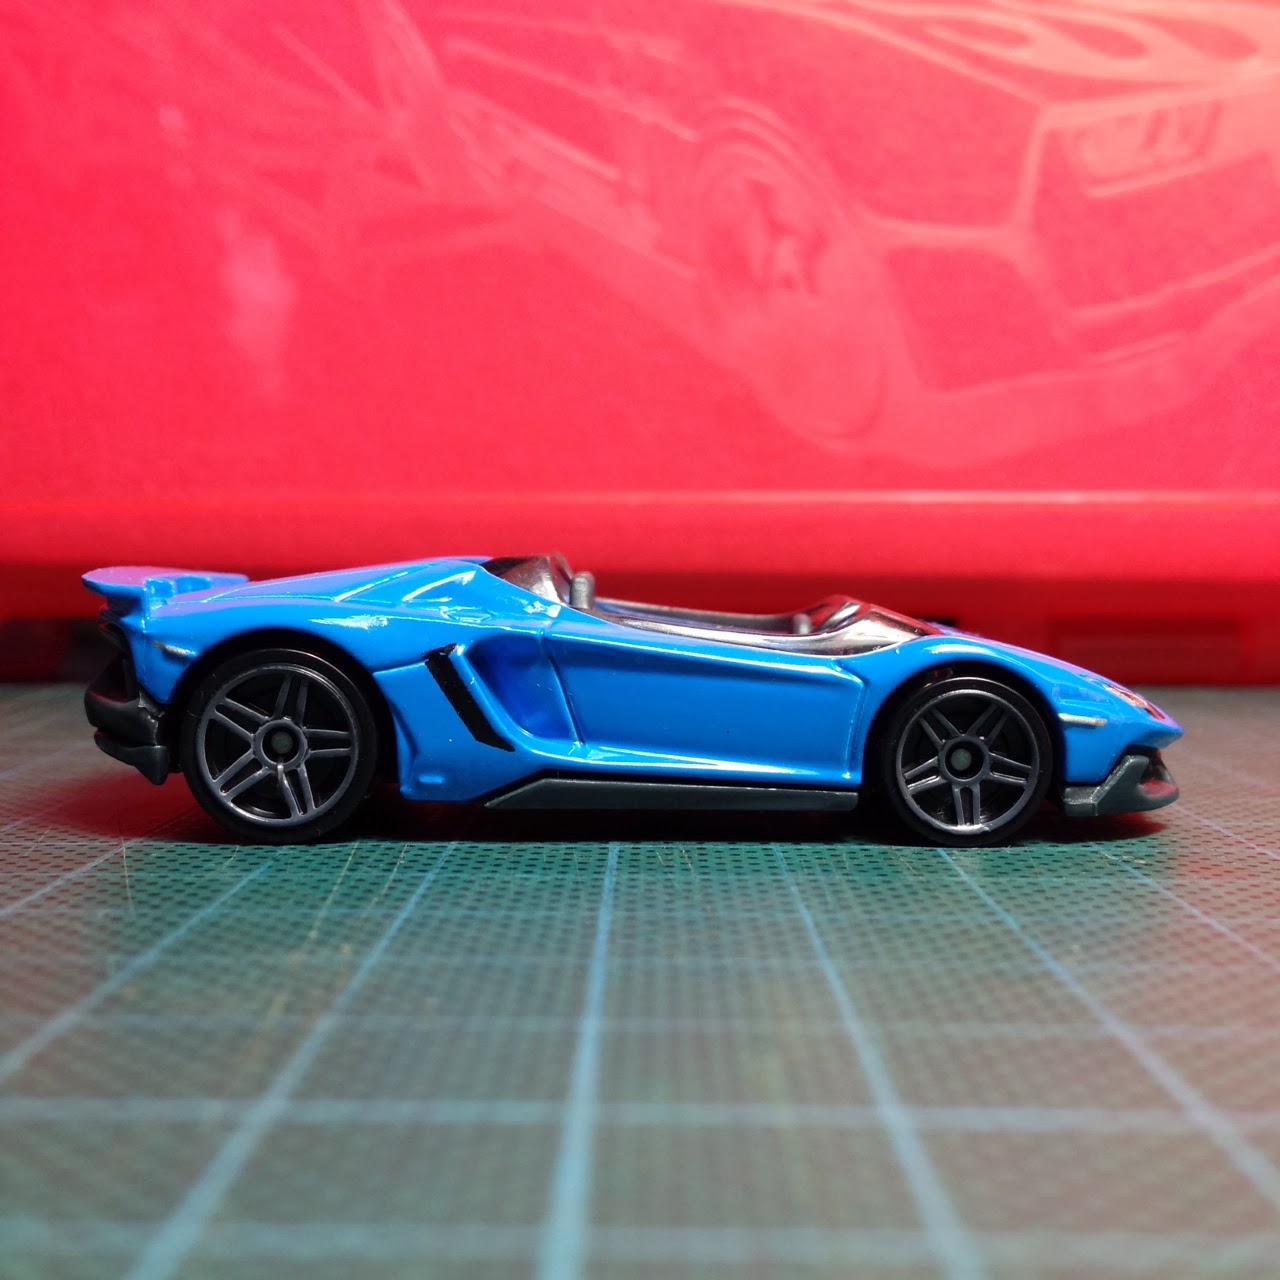 of the recolor on the hot wheels lamborghini aventador j for 2014hot wheels lamborghini aventador j